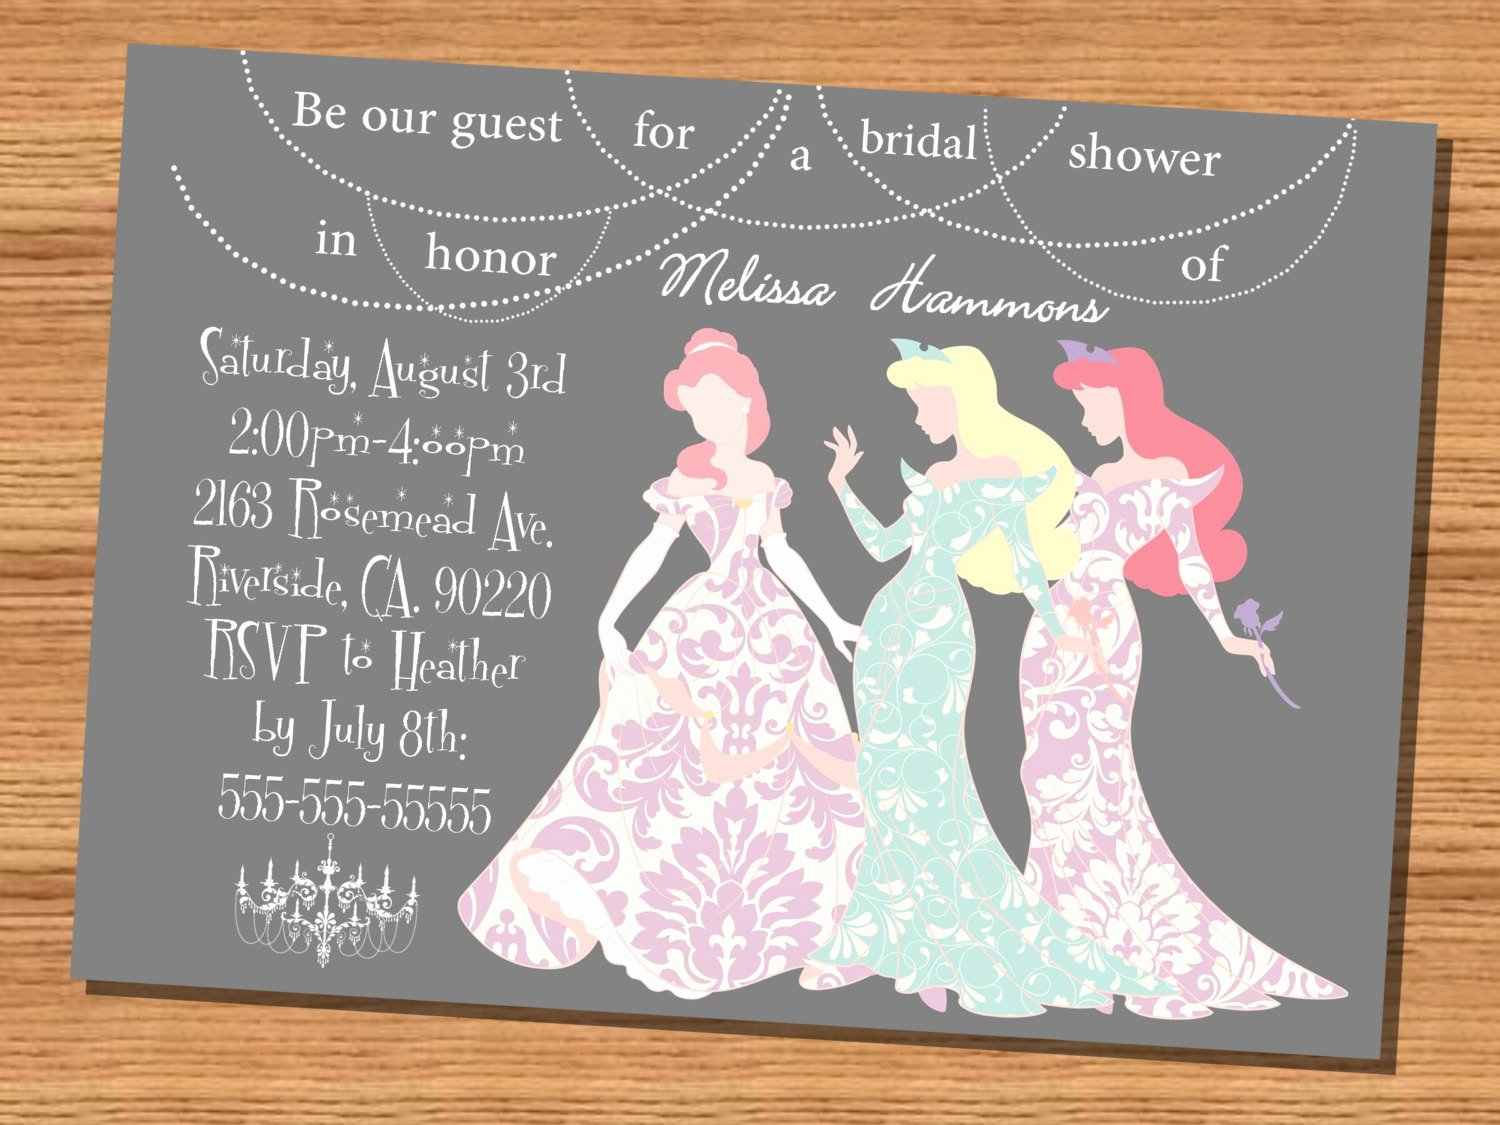 Disney Bridal Shower Invitations Awesome Princess Wedding Shower Invitation Disney Princesses